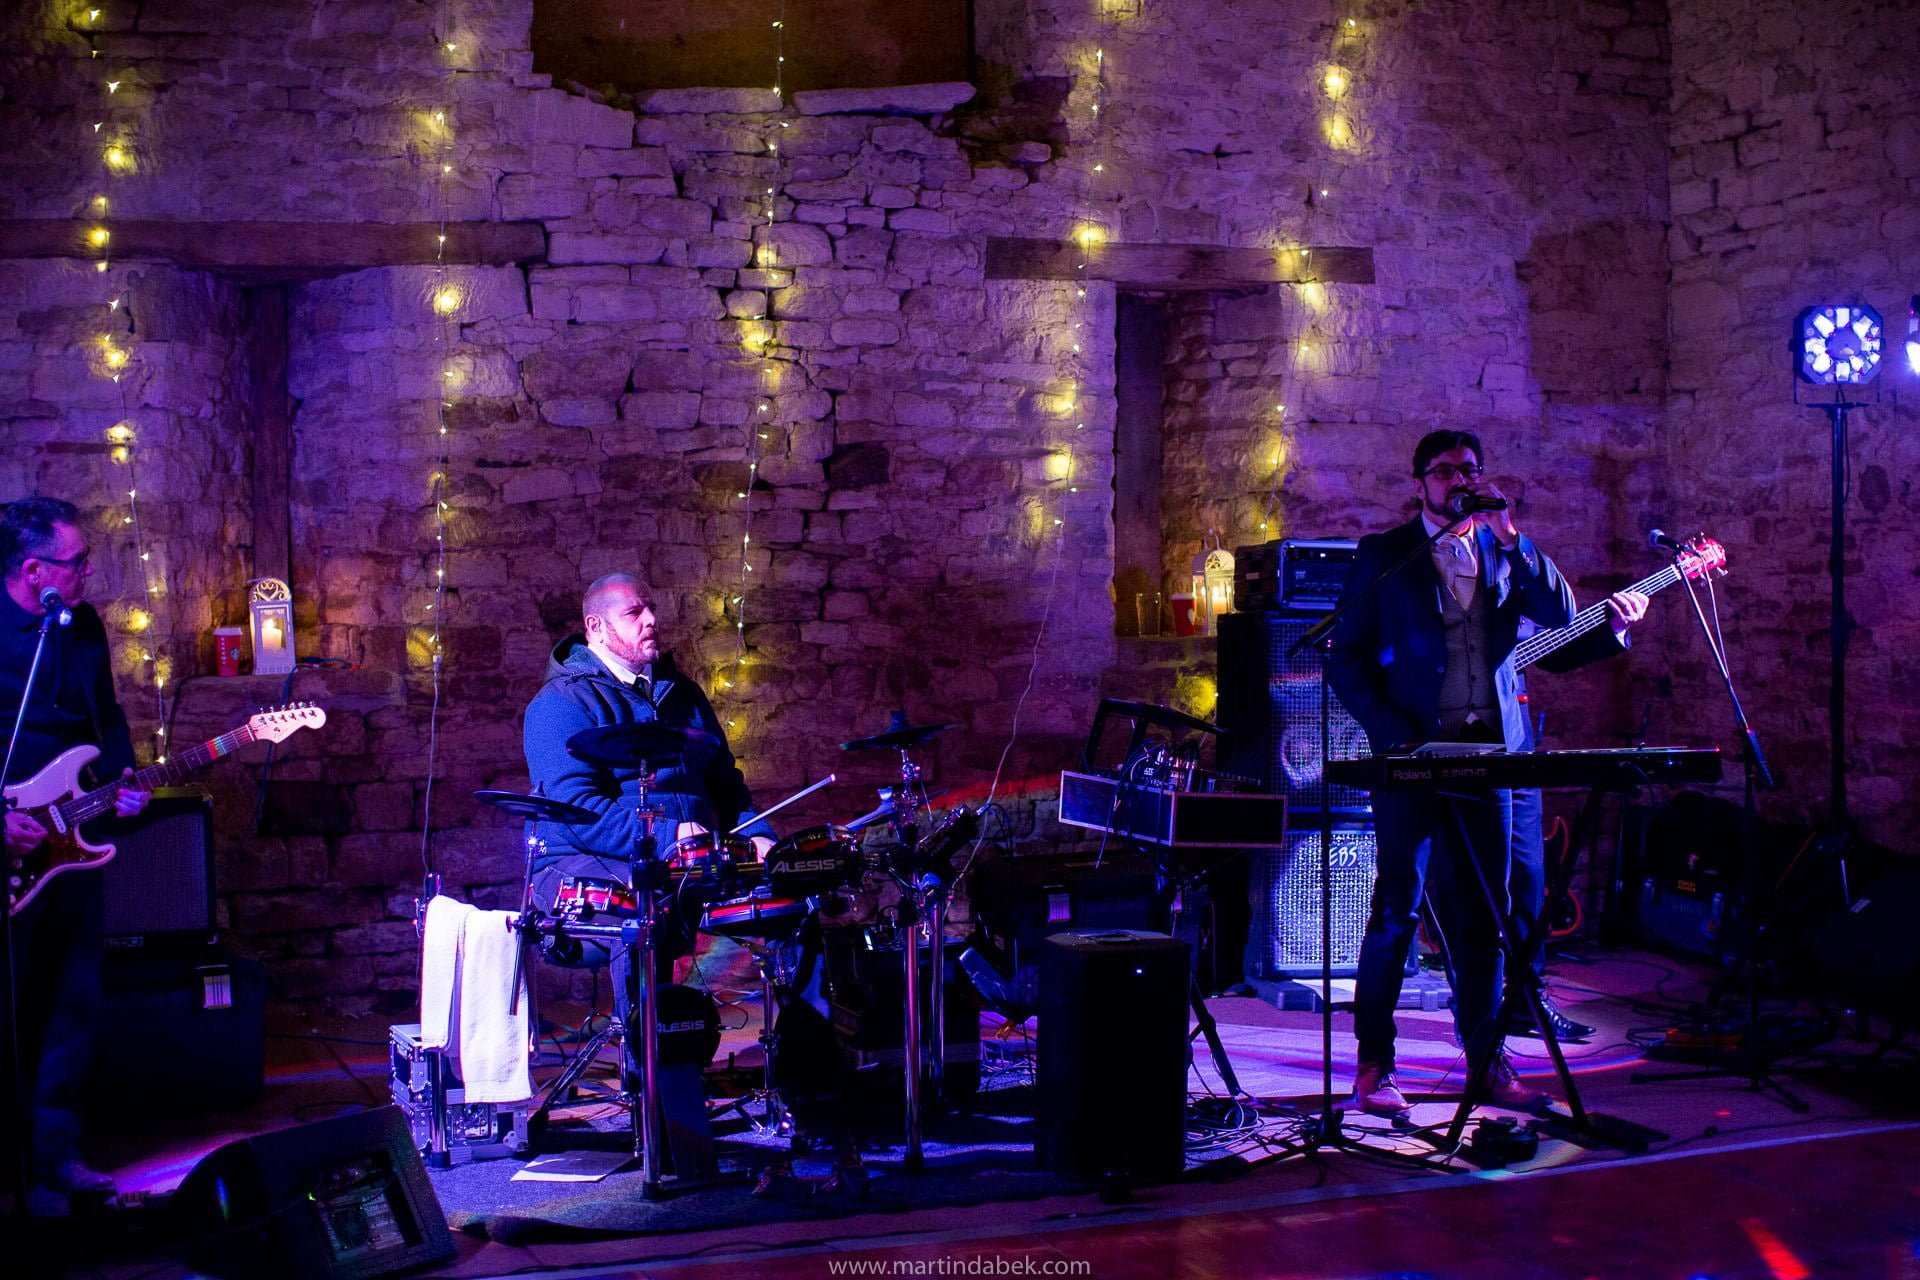 Tommy and The Fuse playing at Saxon barn wedding